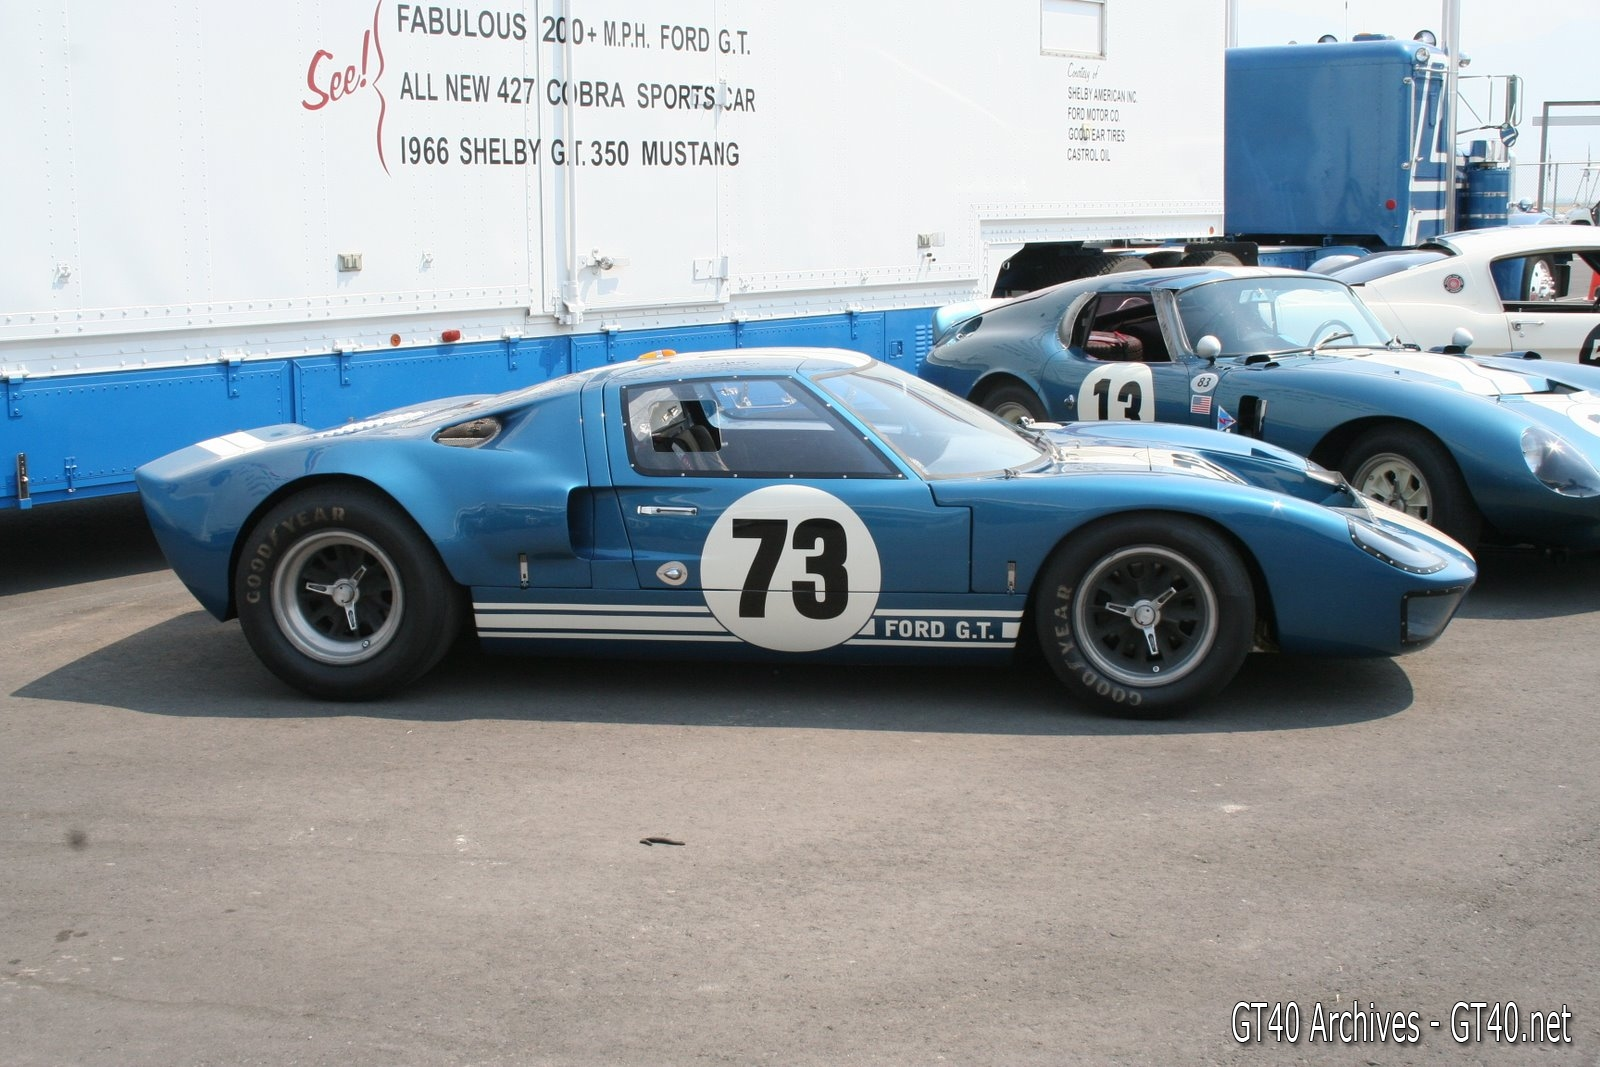 Ford GT40 chassis number GT 103 - 1 - GT40 Archives